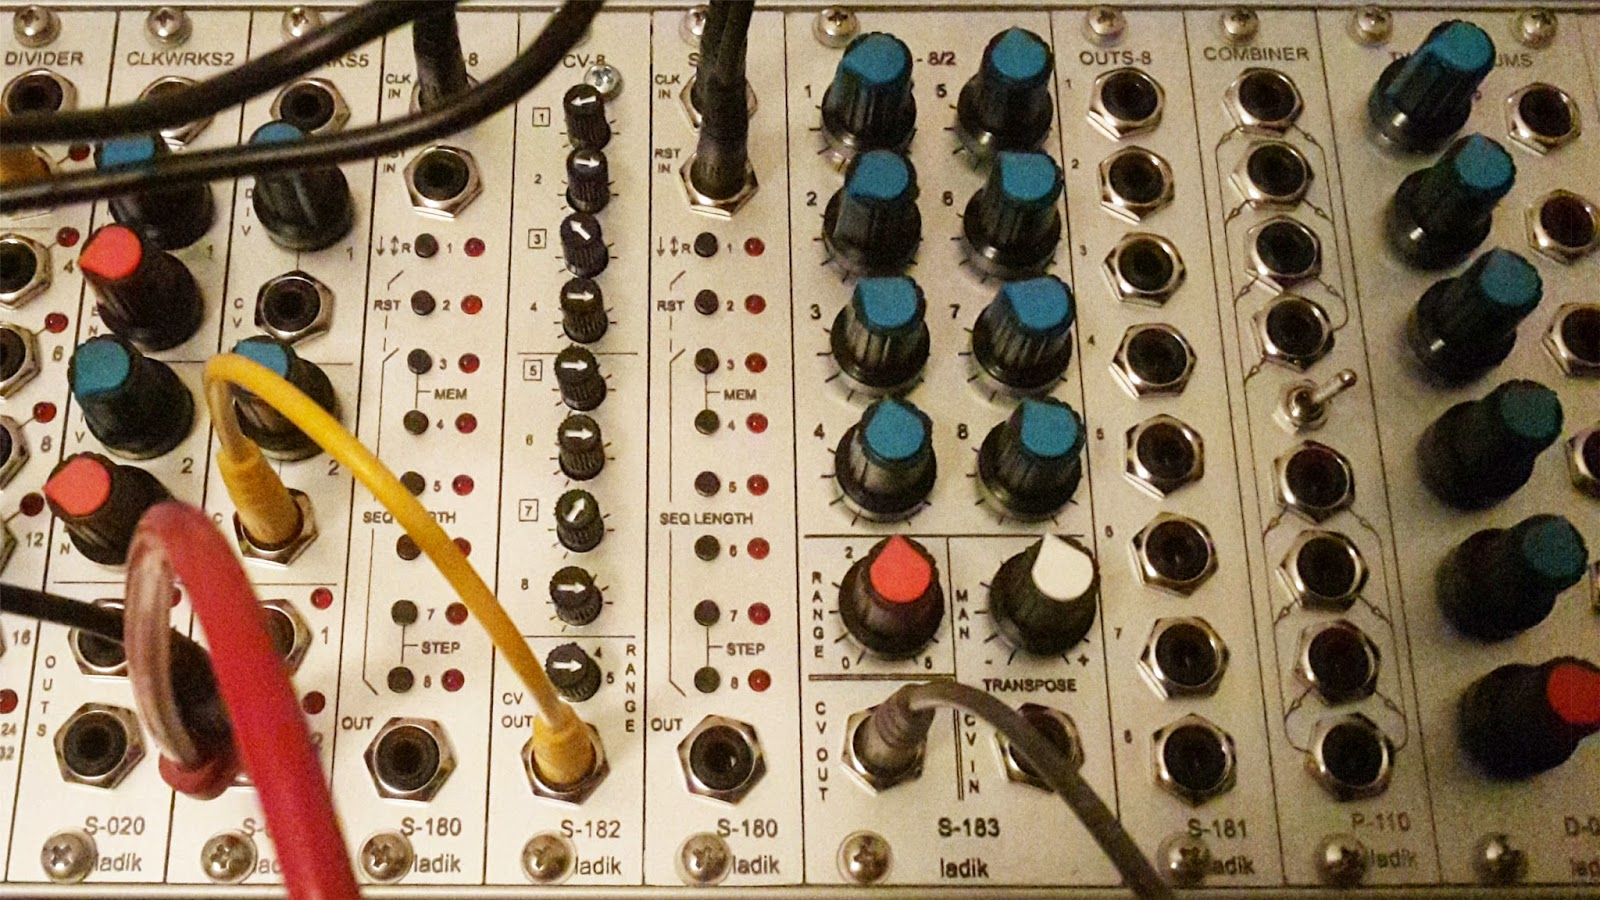 Ladik S-180, S-181, S-182 & S-183 Sequencer System